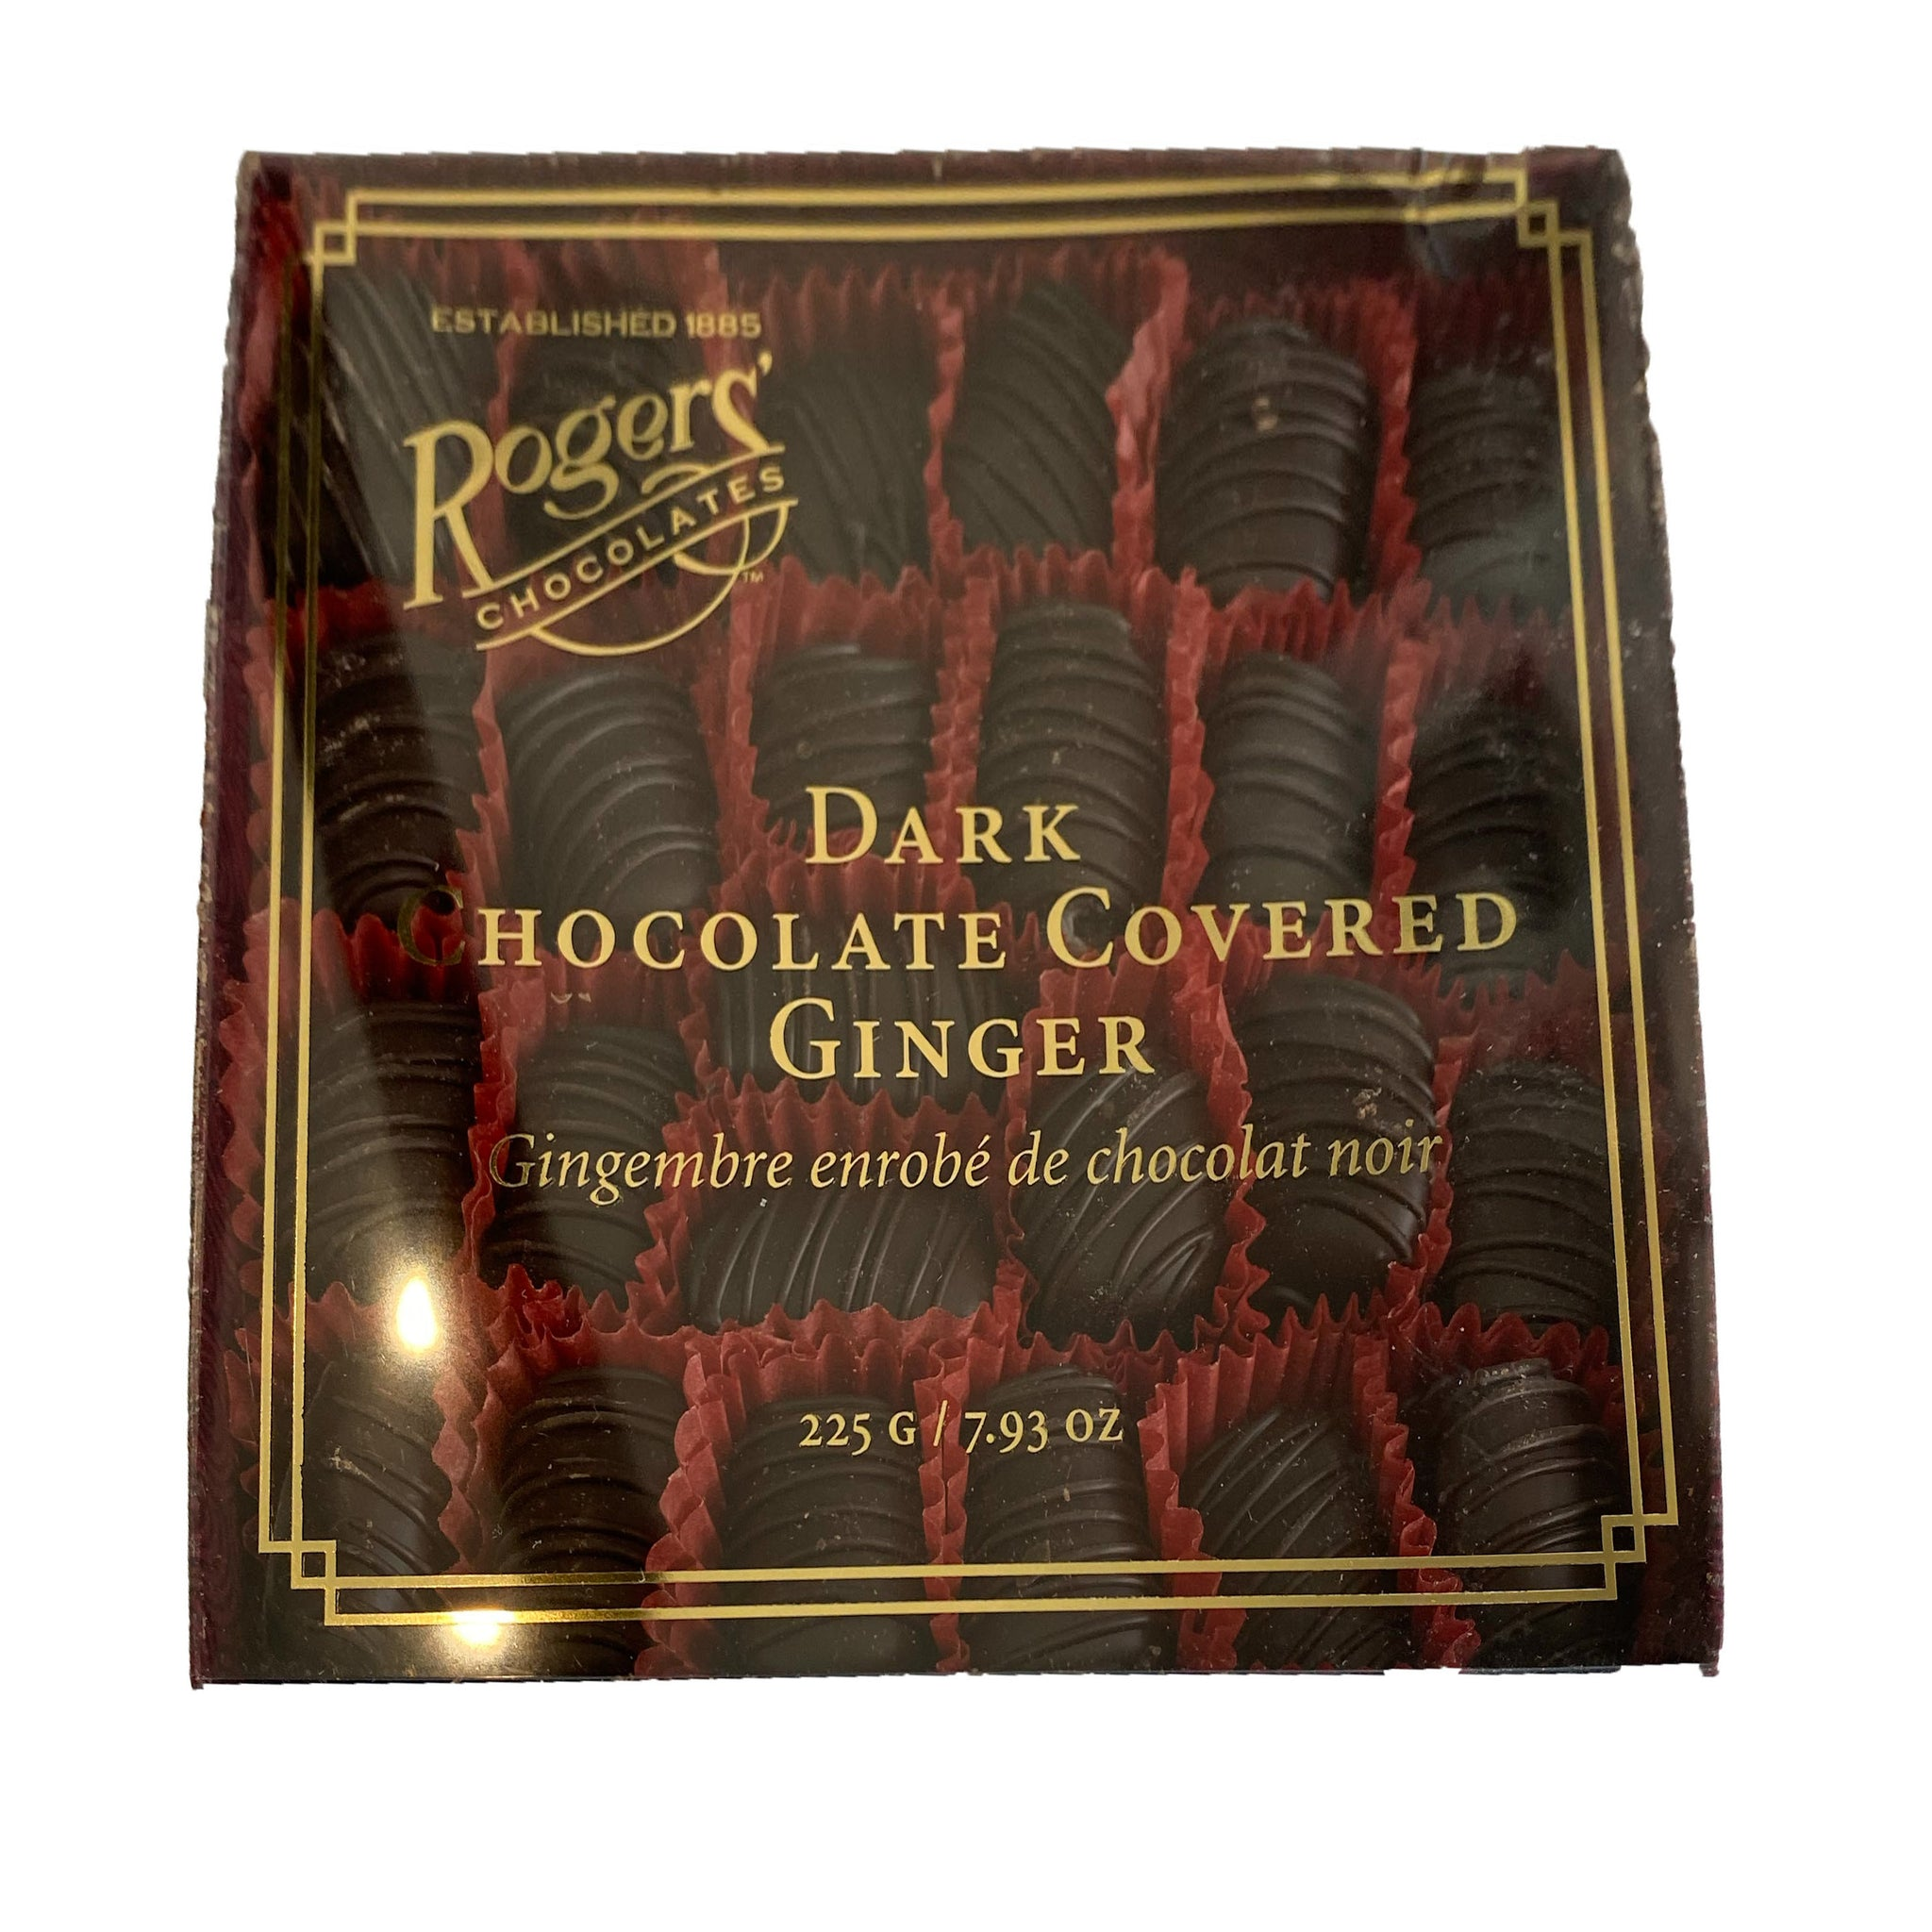 Rogers Dark Chocolate Covered Ginger 225g